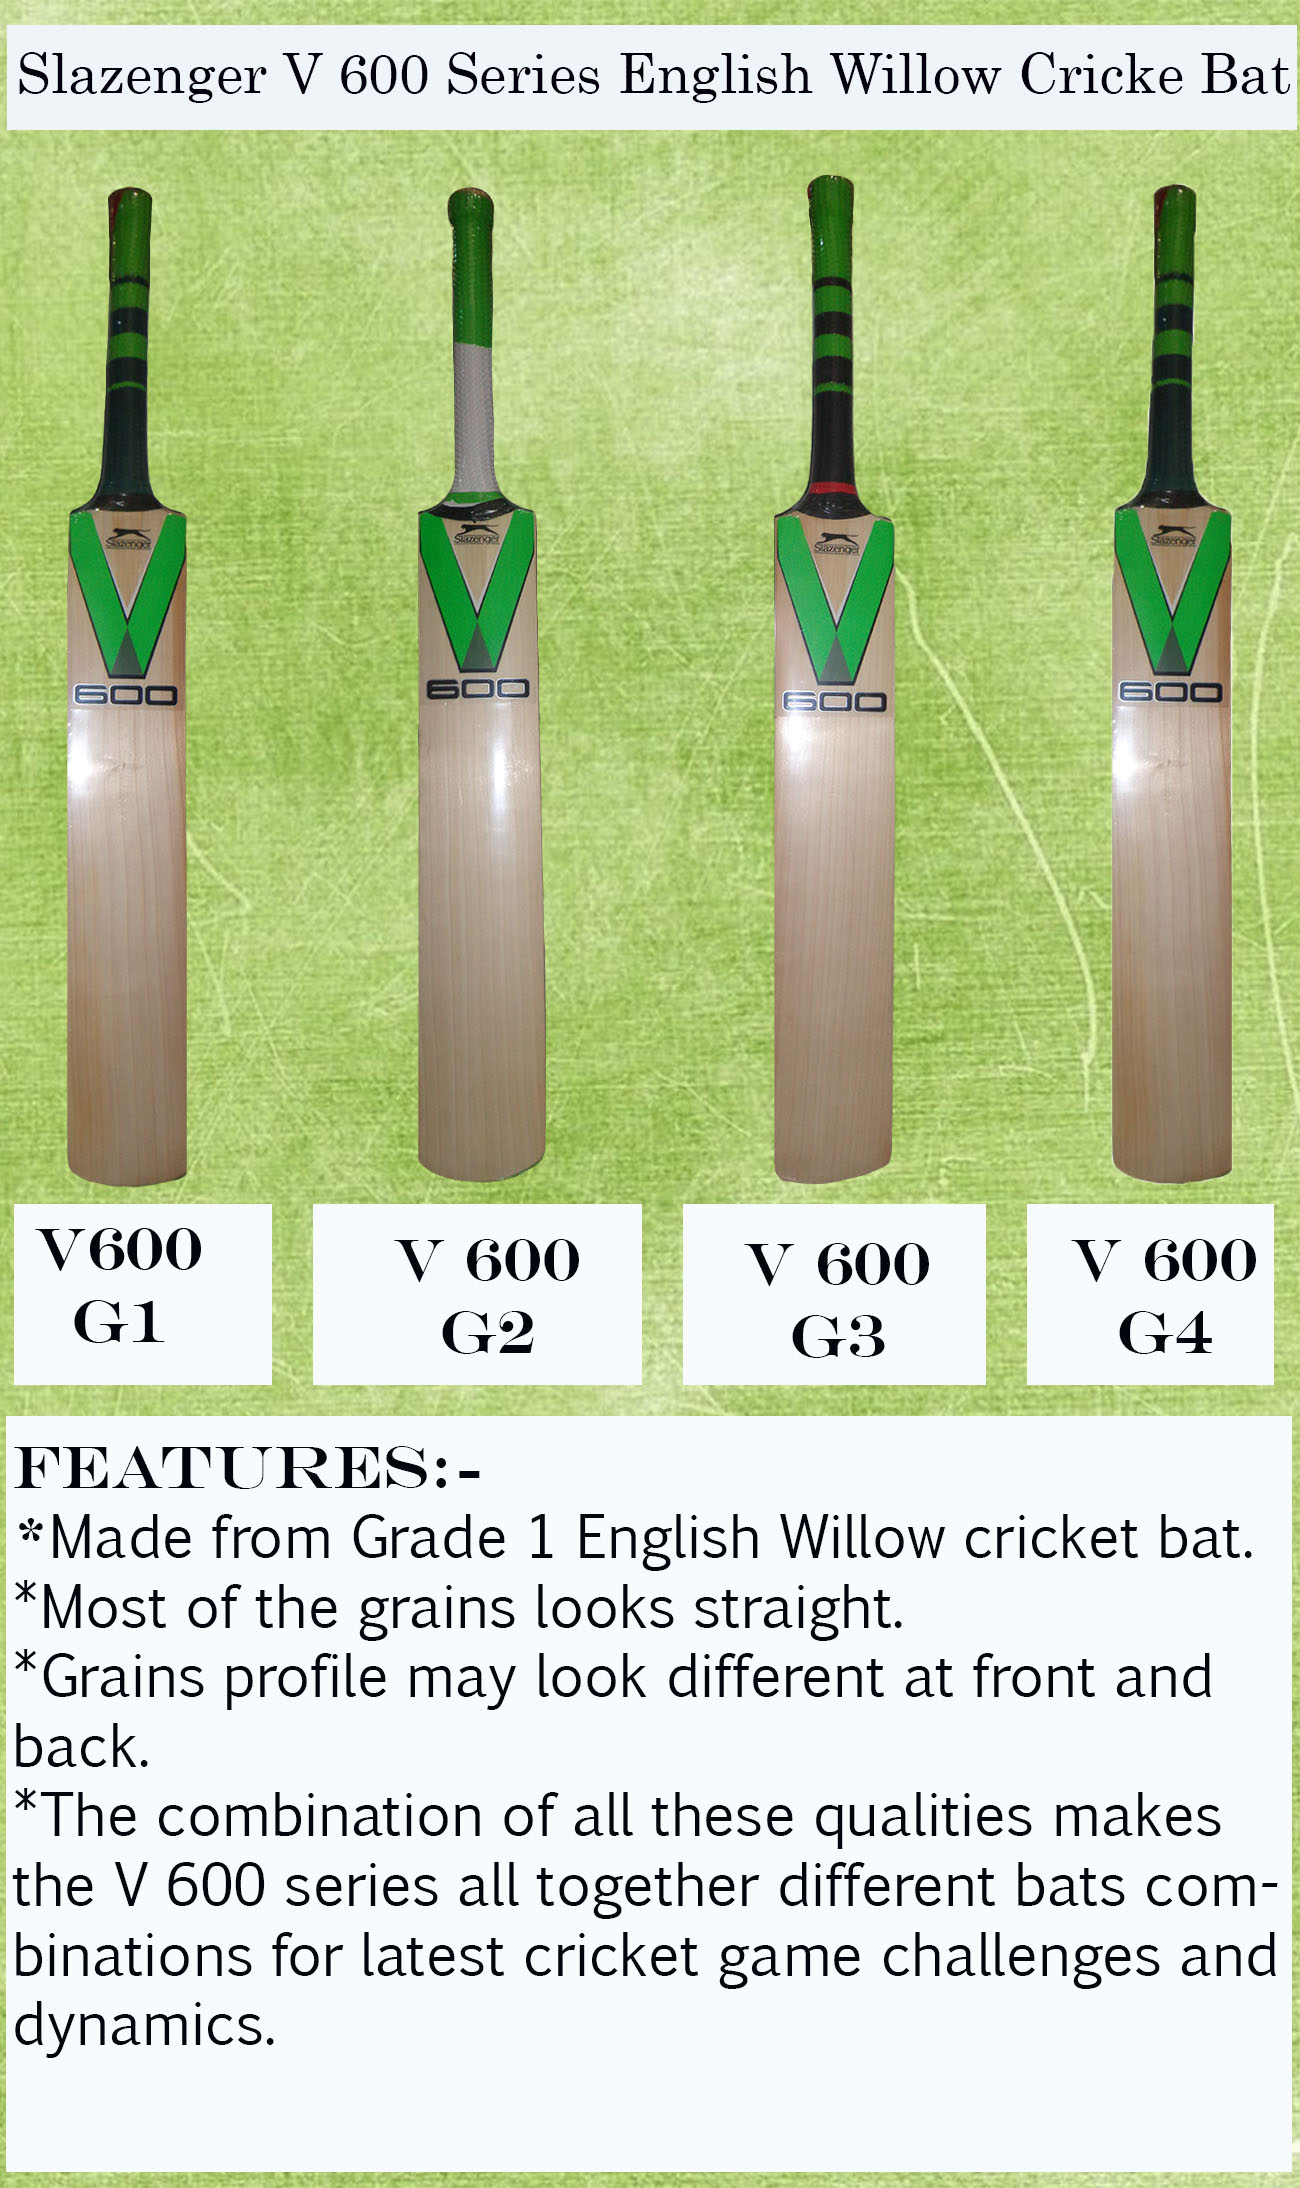 Slazenger V 600 Series English Willow Cricket Bats